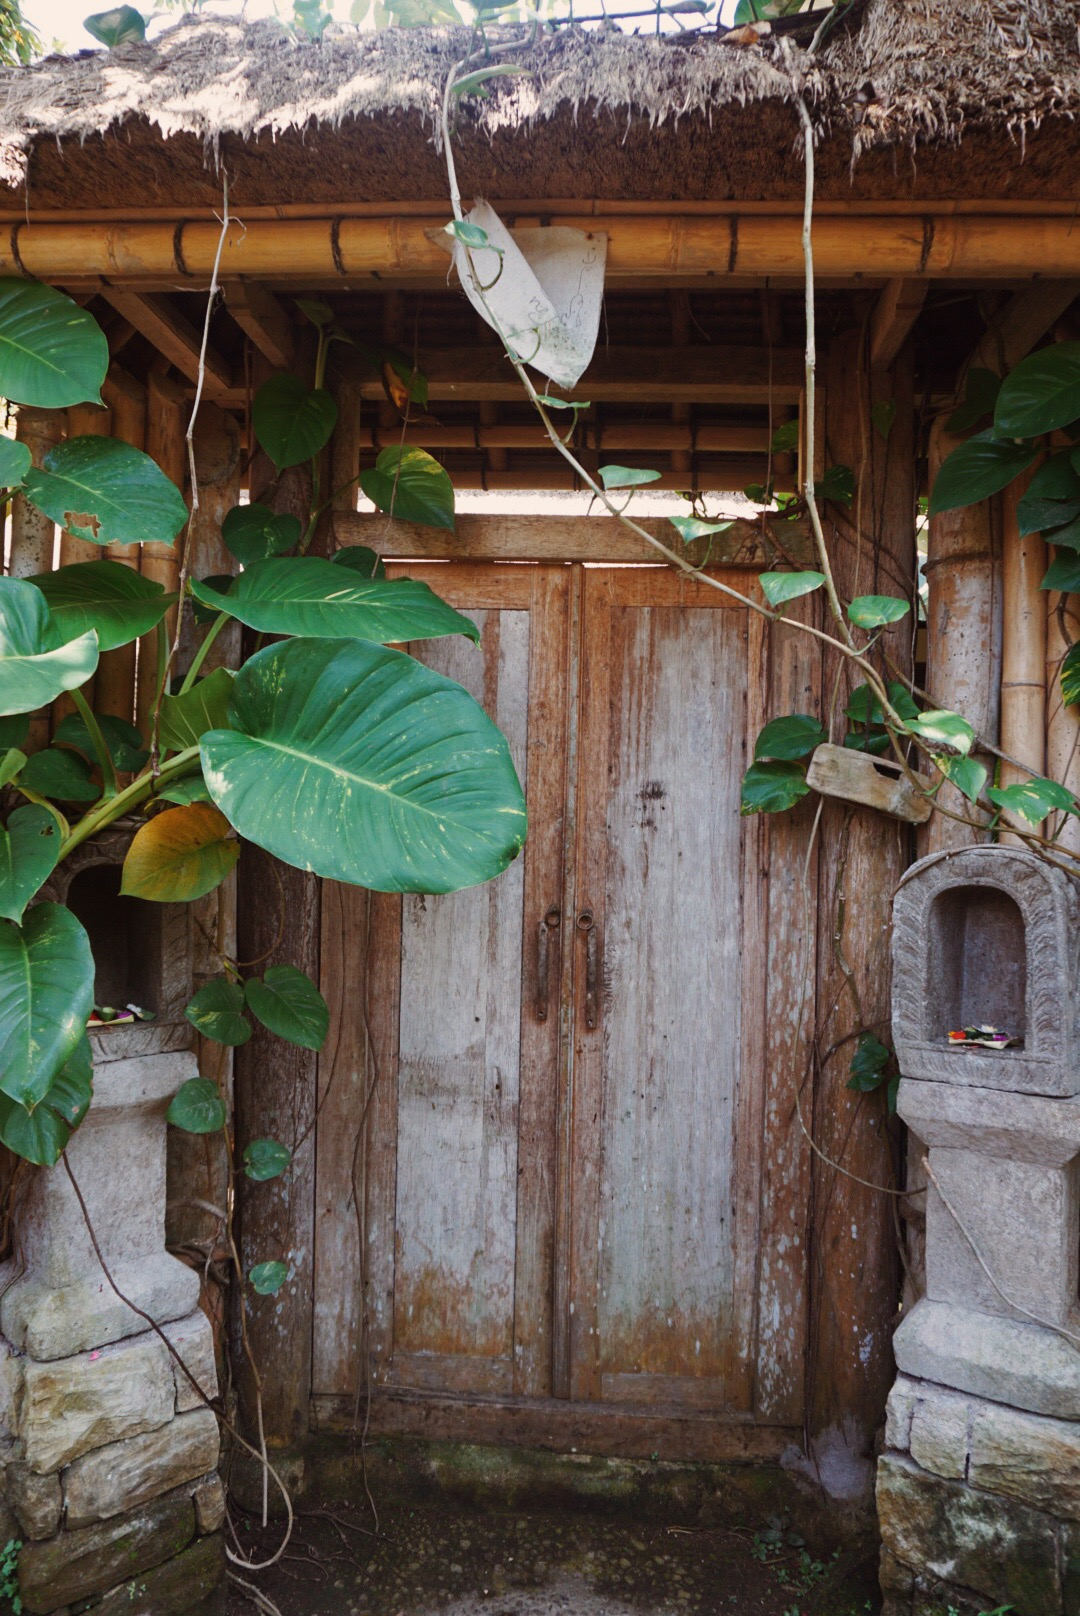 so many magical doorways in Ubud.